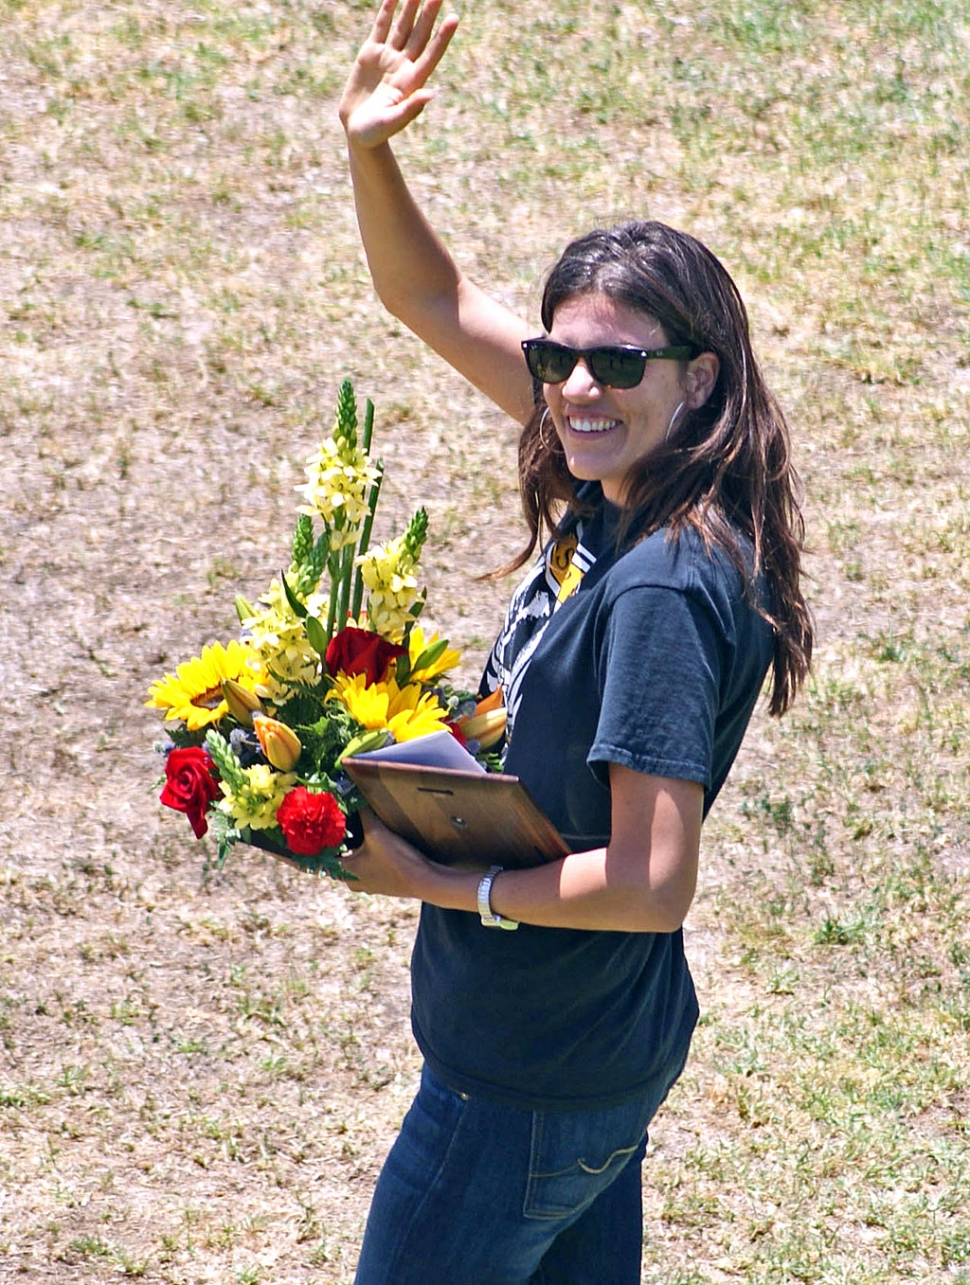 Laura Todis, Ventura County Office of Education's Teacher of the Year. Photo by Bob Sube.